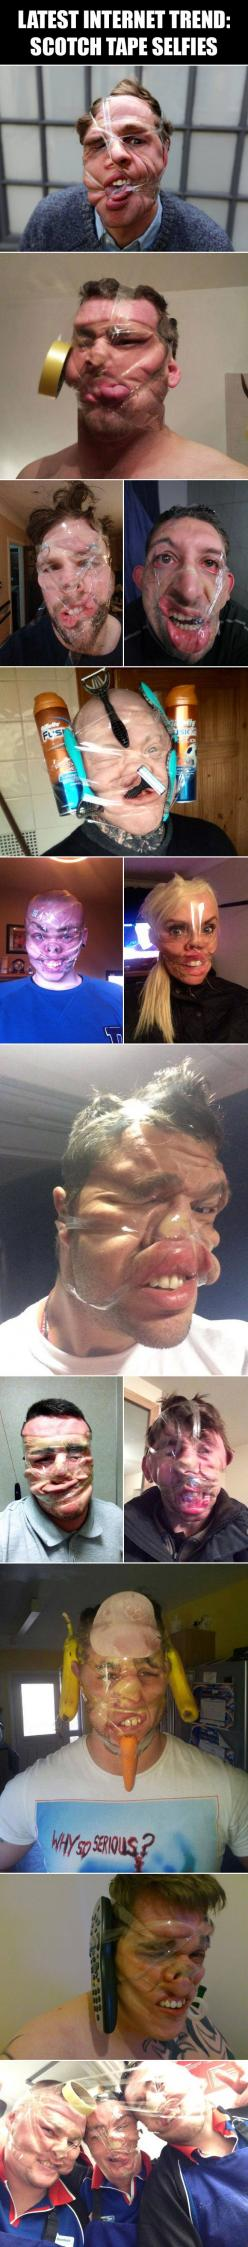 Oh my gosh...I'm dying!!!!!: Giggle, Tape Selfies, Funnies, Stupid Selfie, So Funny, Sleeping At Work Funny, Scotch Tape, Cant Sleep Funny